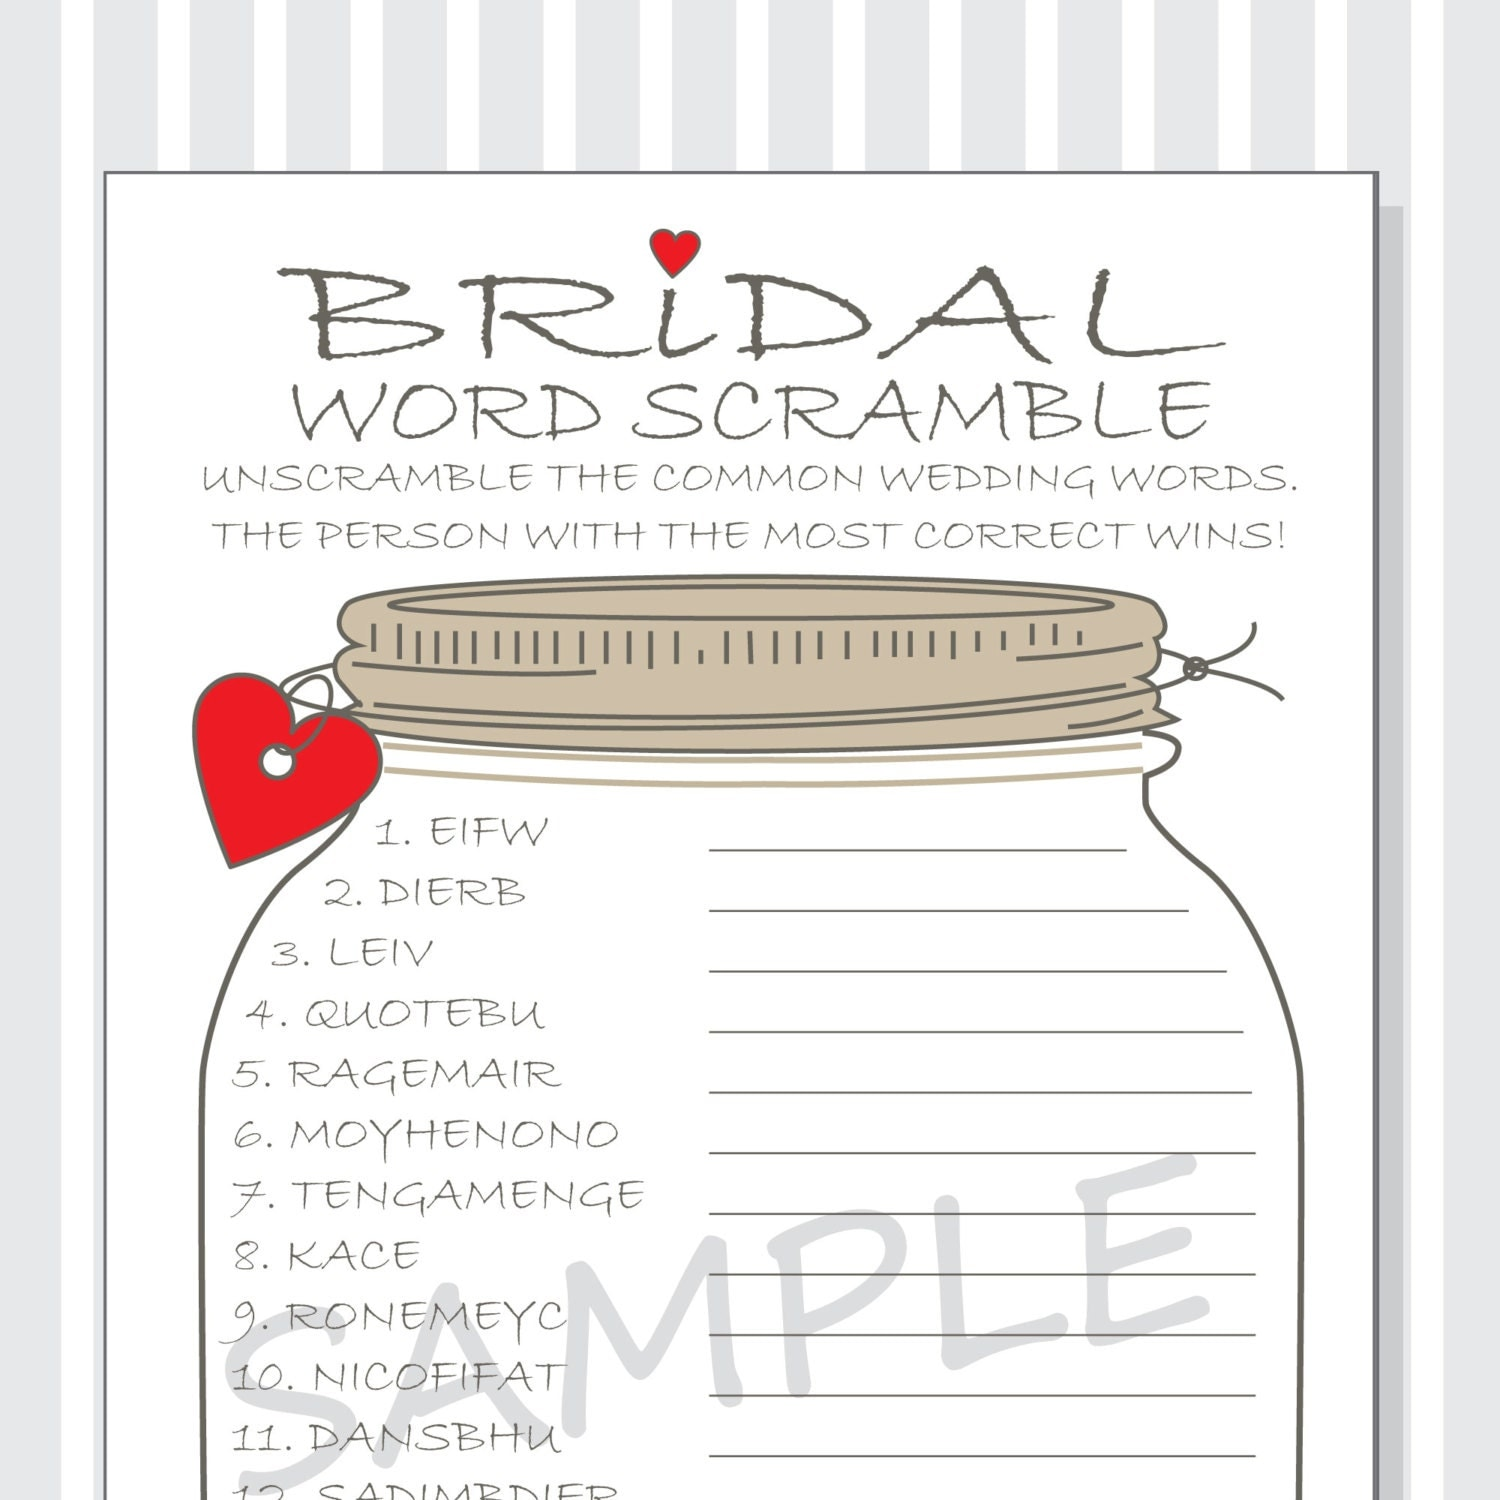 This is a graphic of Impertinent Free Printable Bridal Shower Games Word Scramble